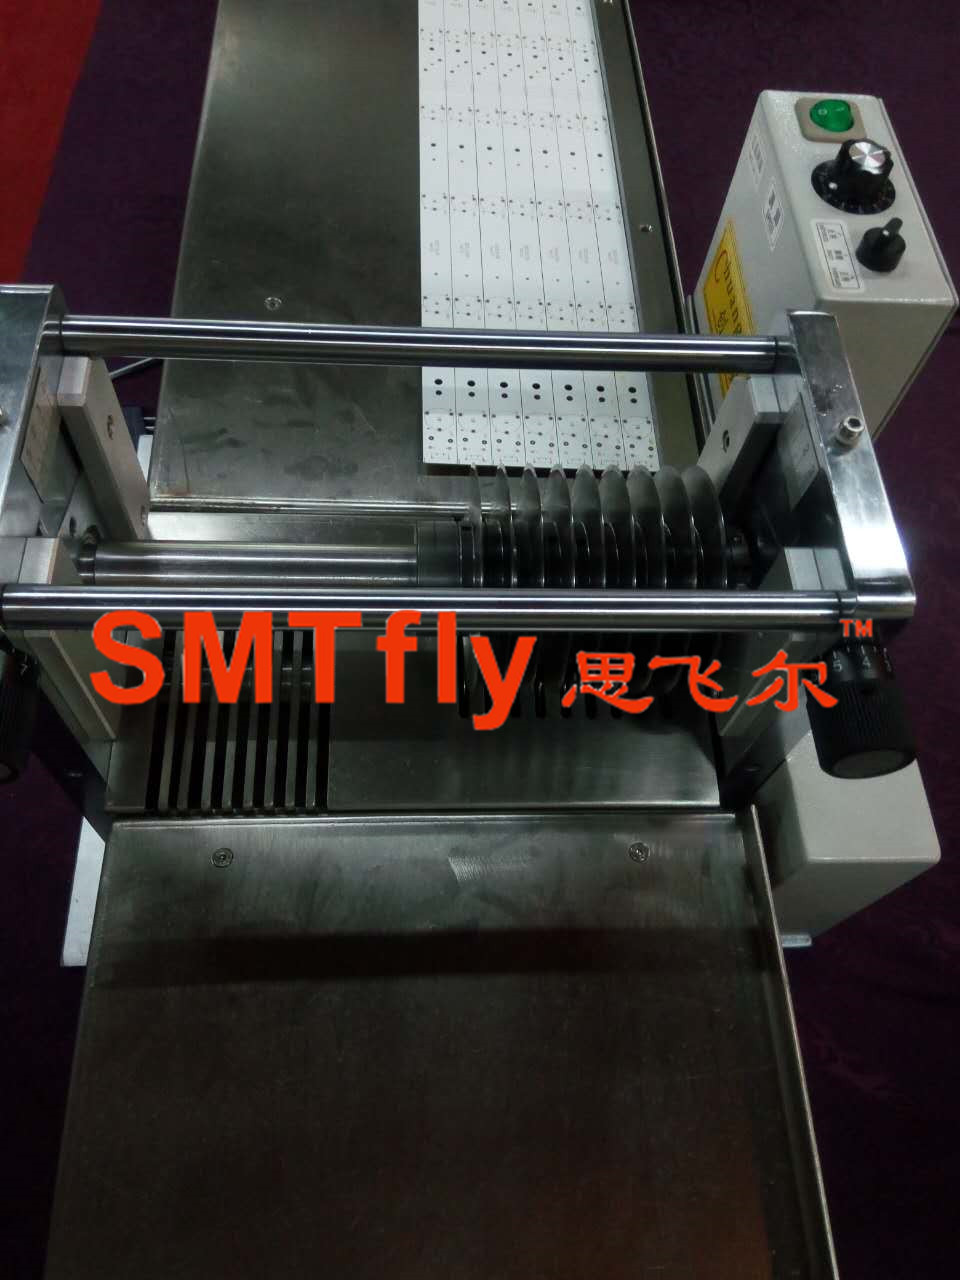 Multitool PCB Cutting Machine,SMTfly-1SN